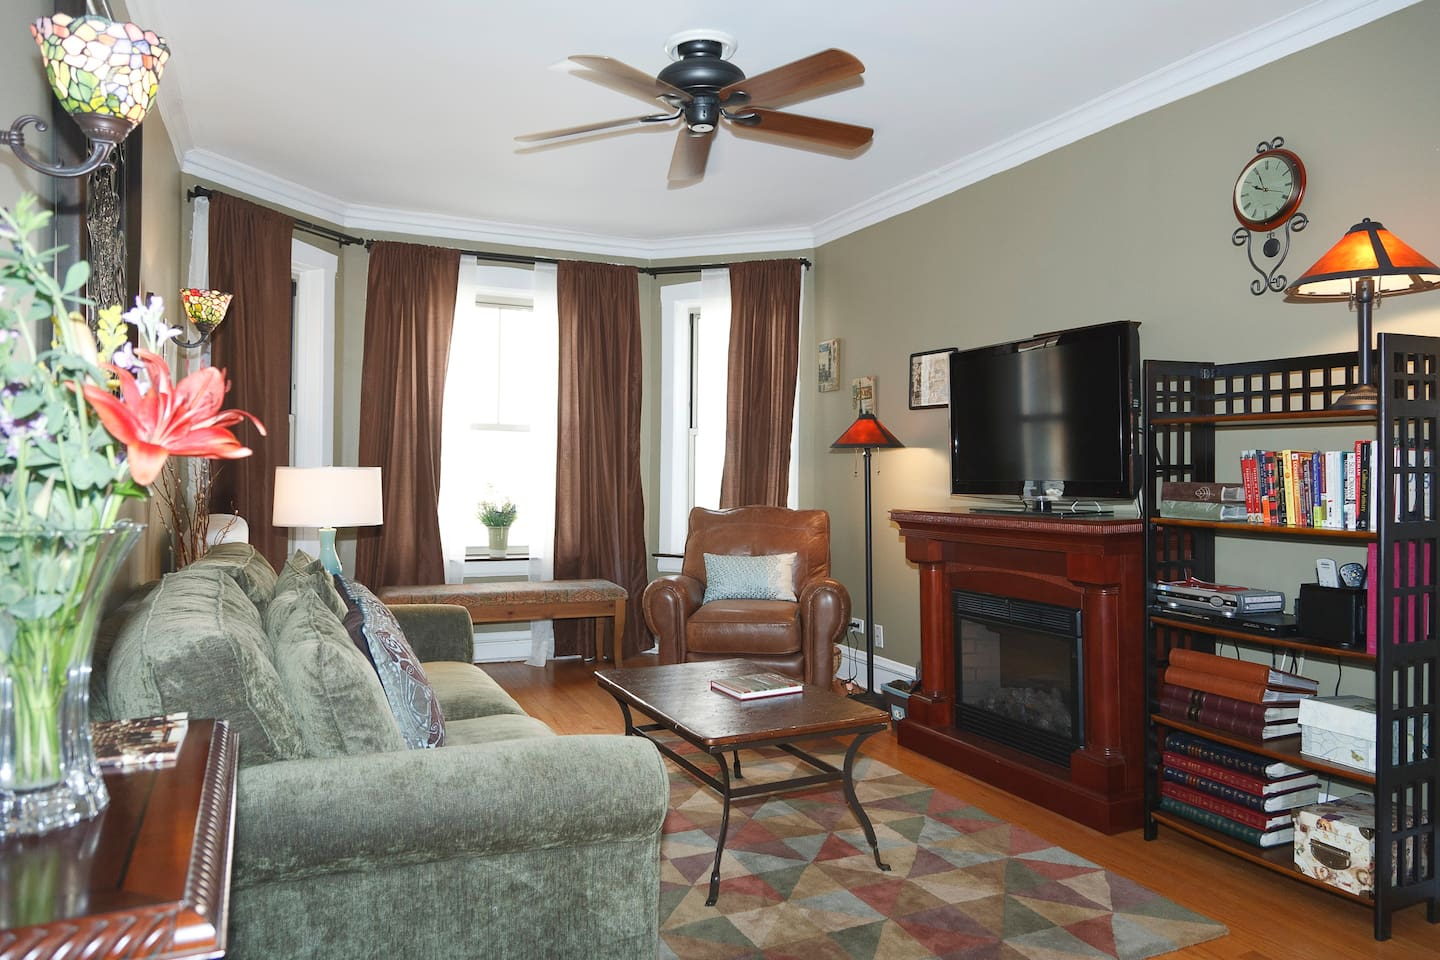 Beautifully decorated living room. The electric fireplace provides a cozy feel.